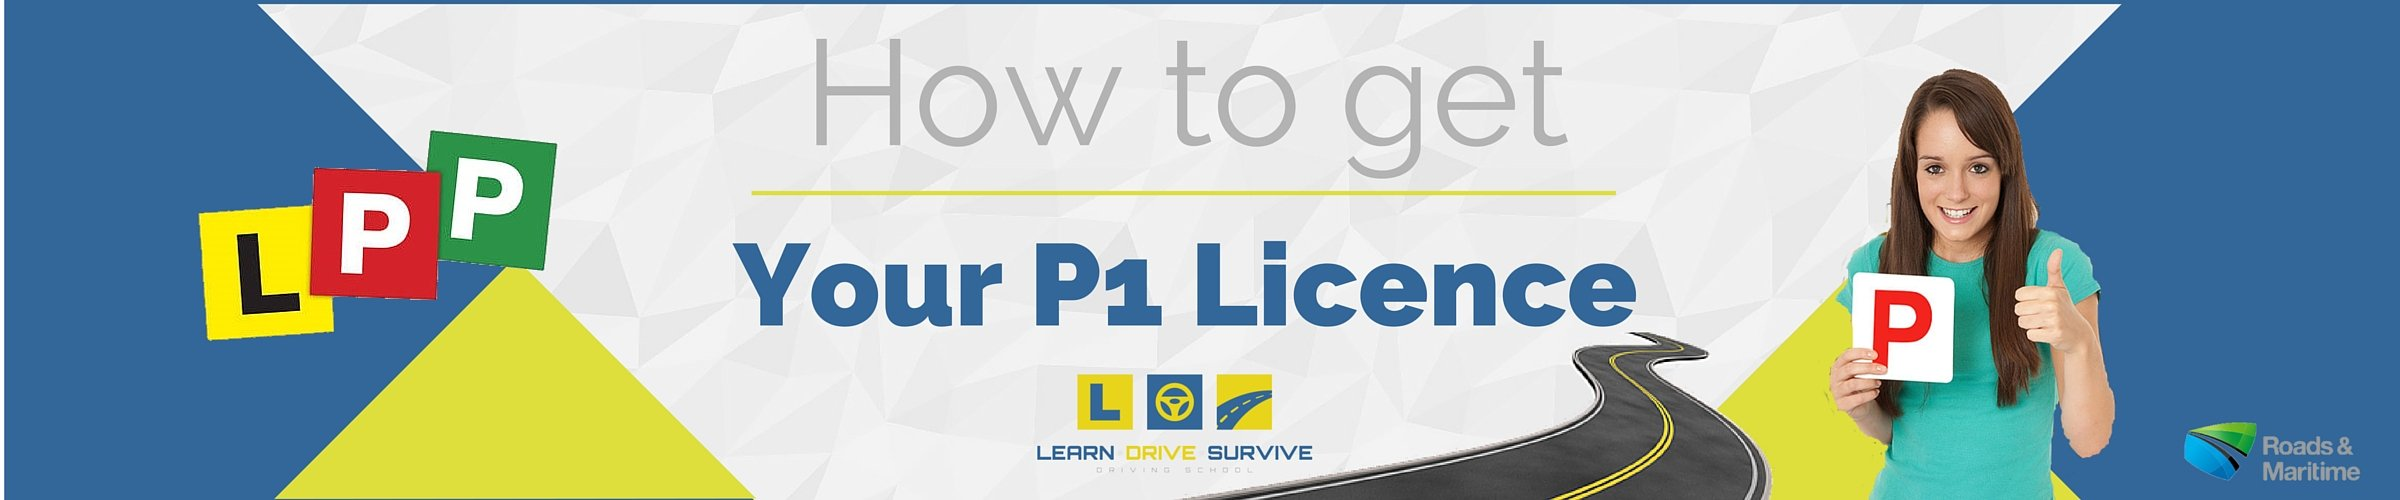 How to get your P1 Drivers Licence